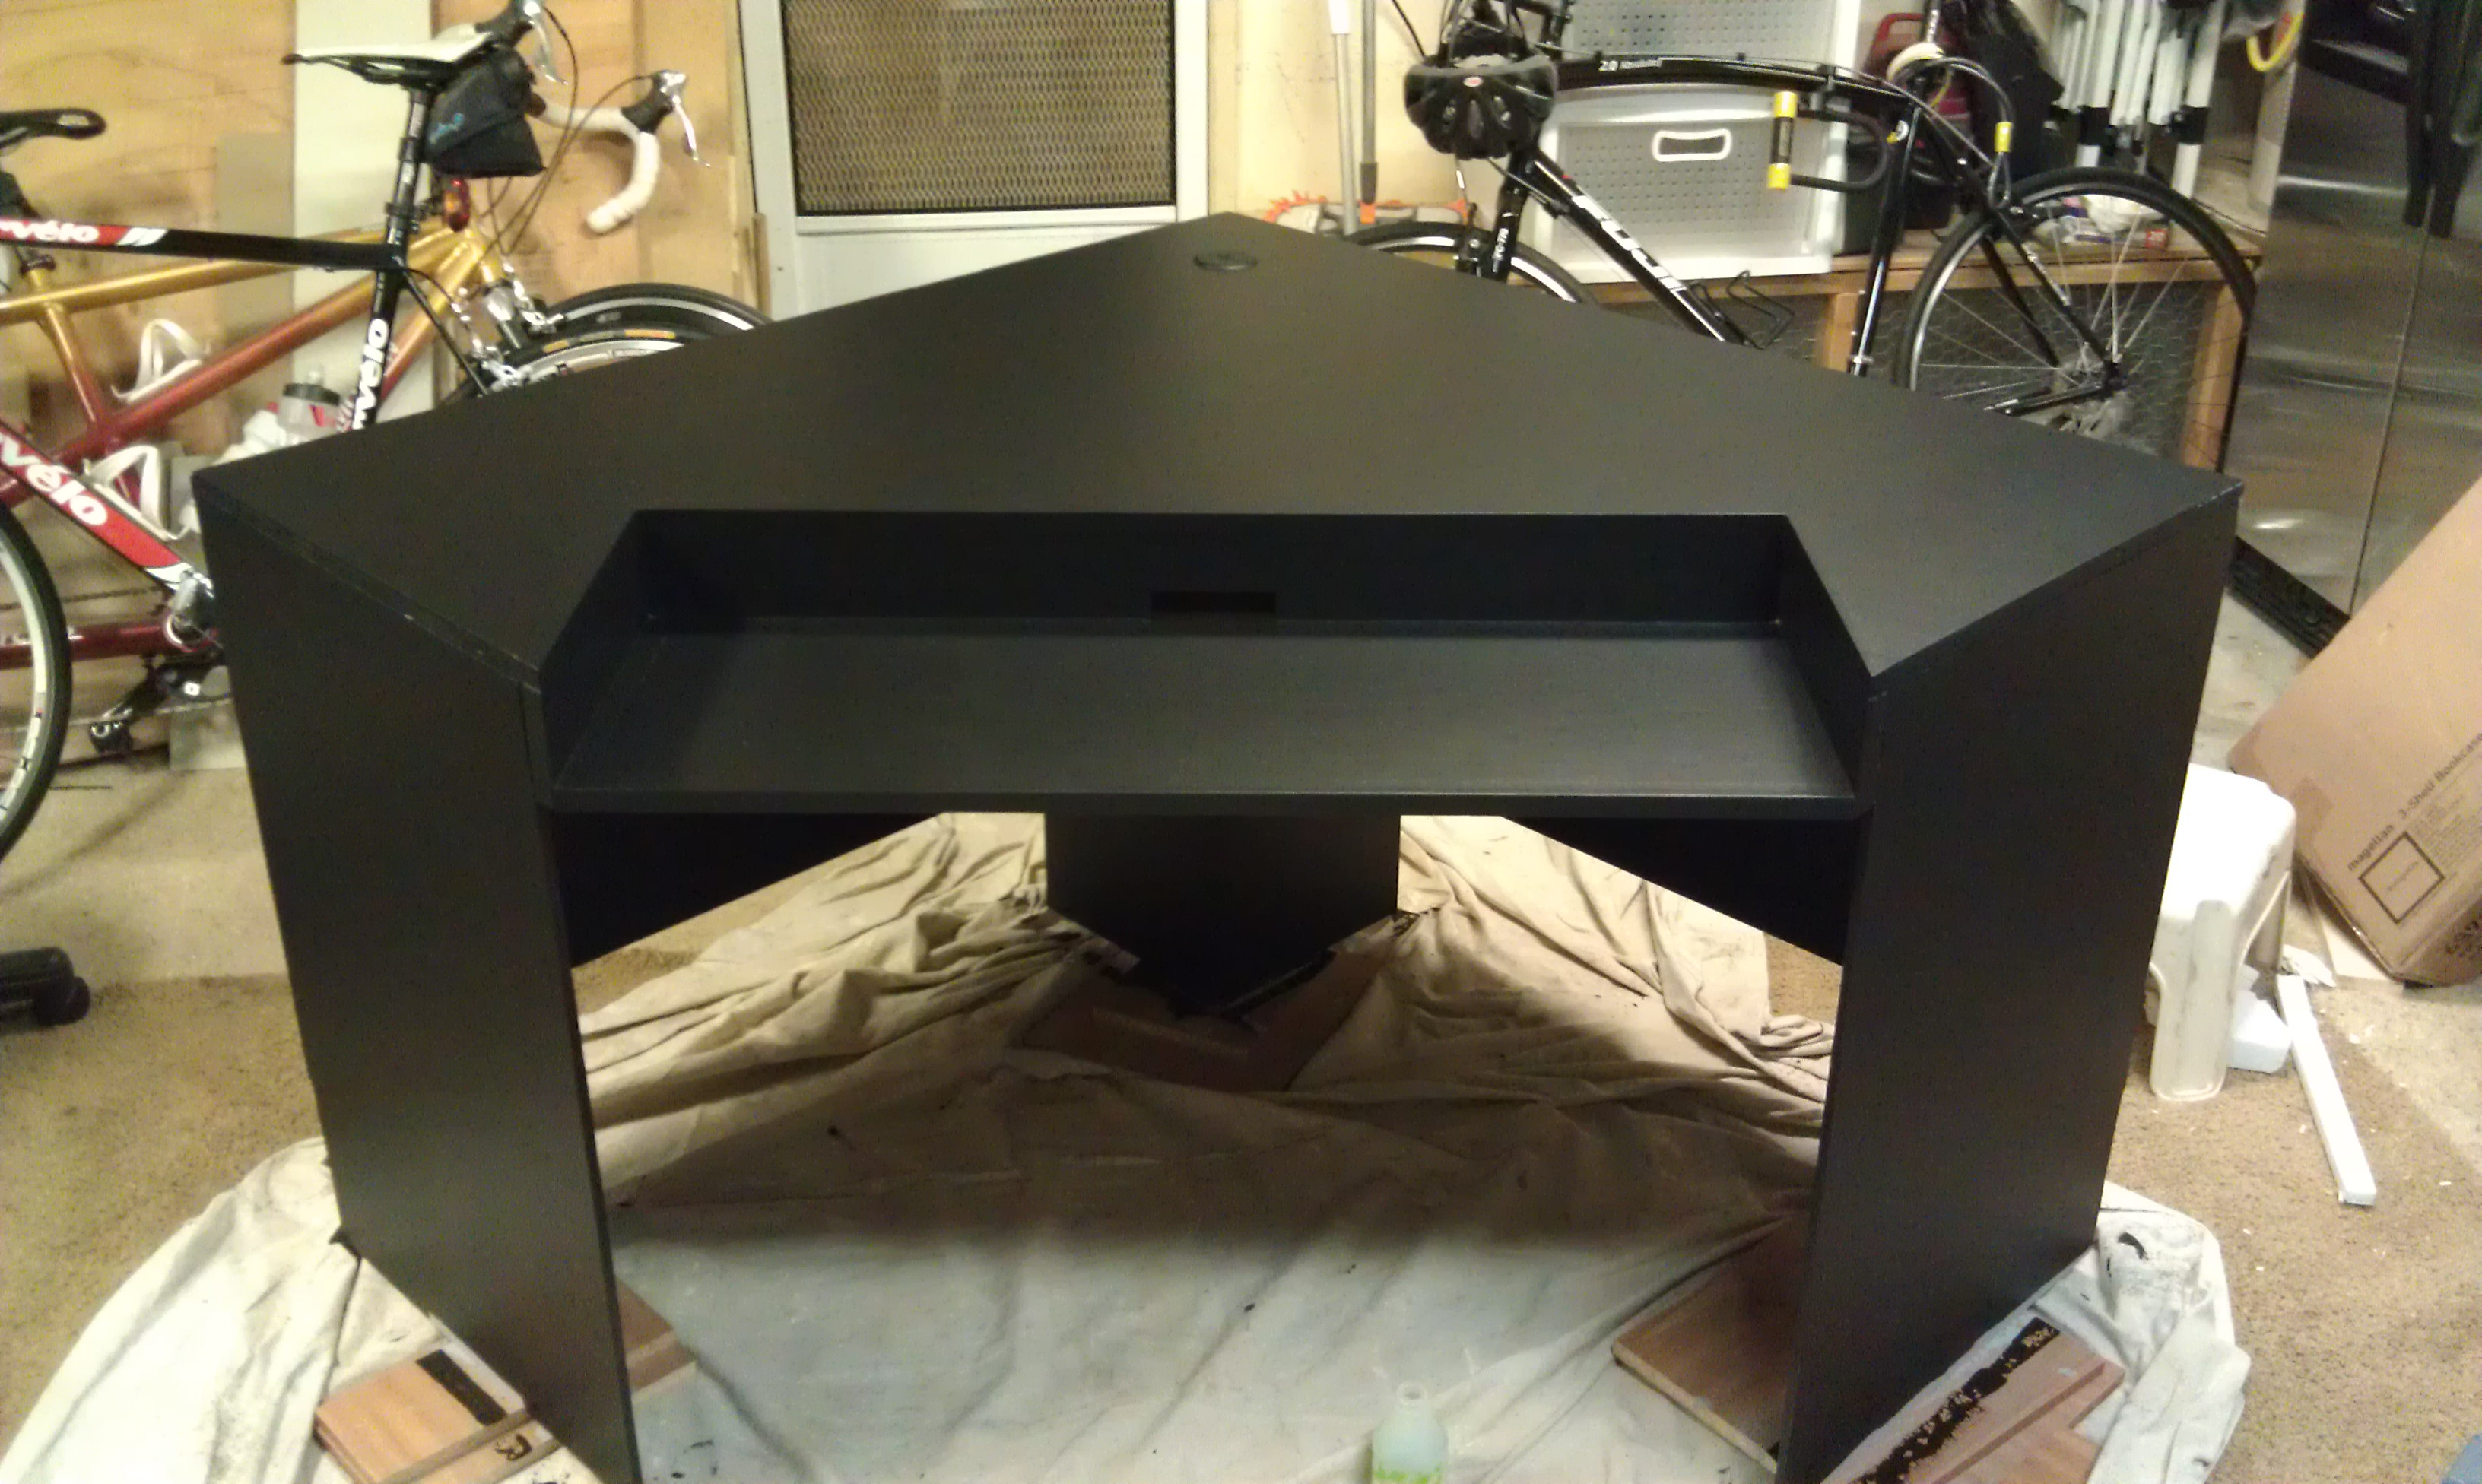 My New Gaming Station Build Log* - Page 3